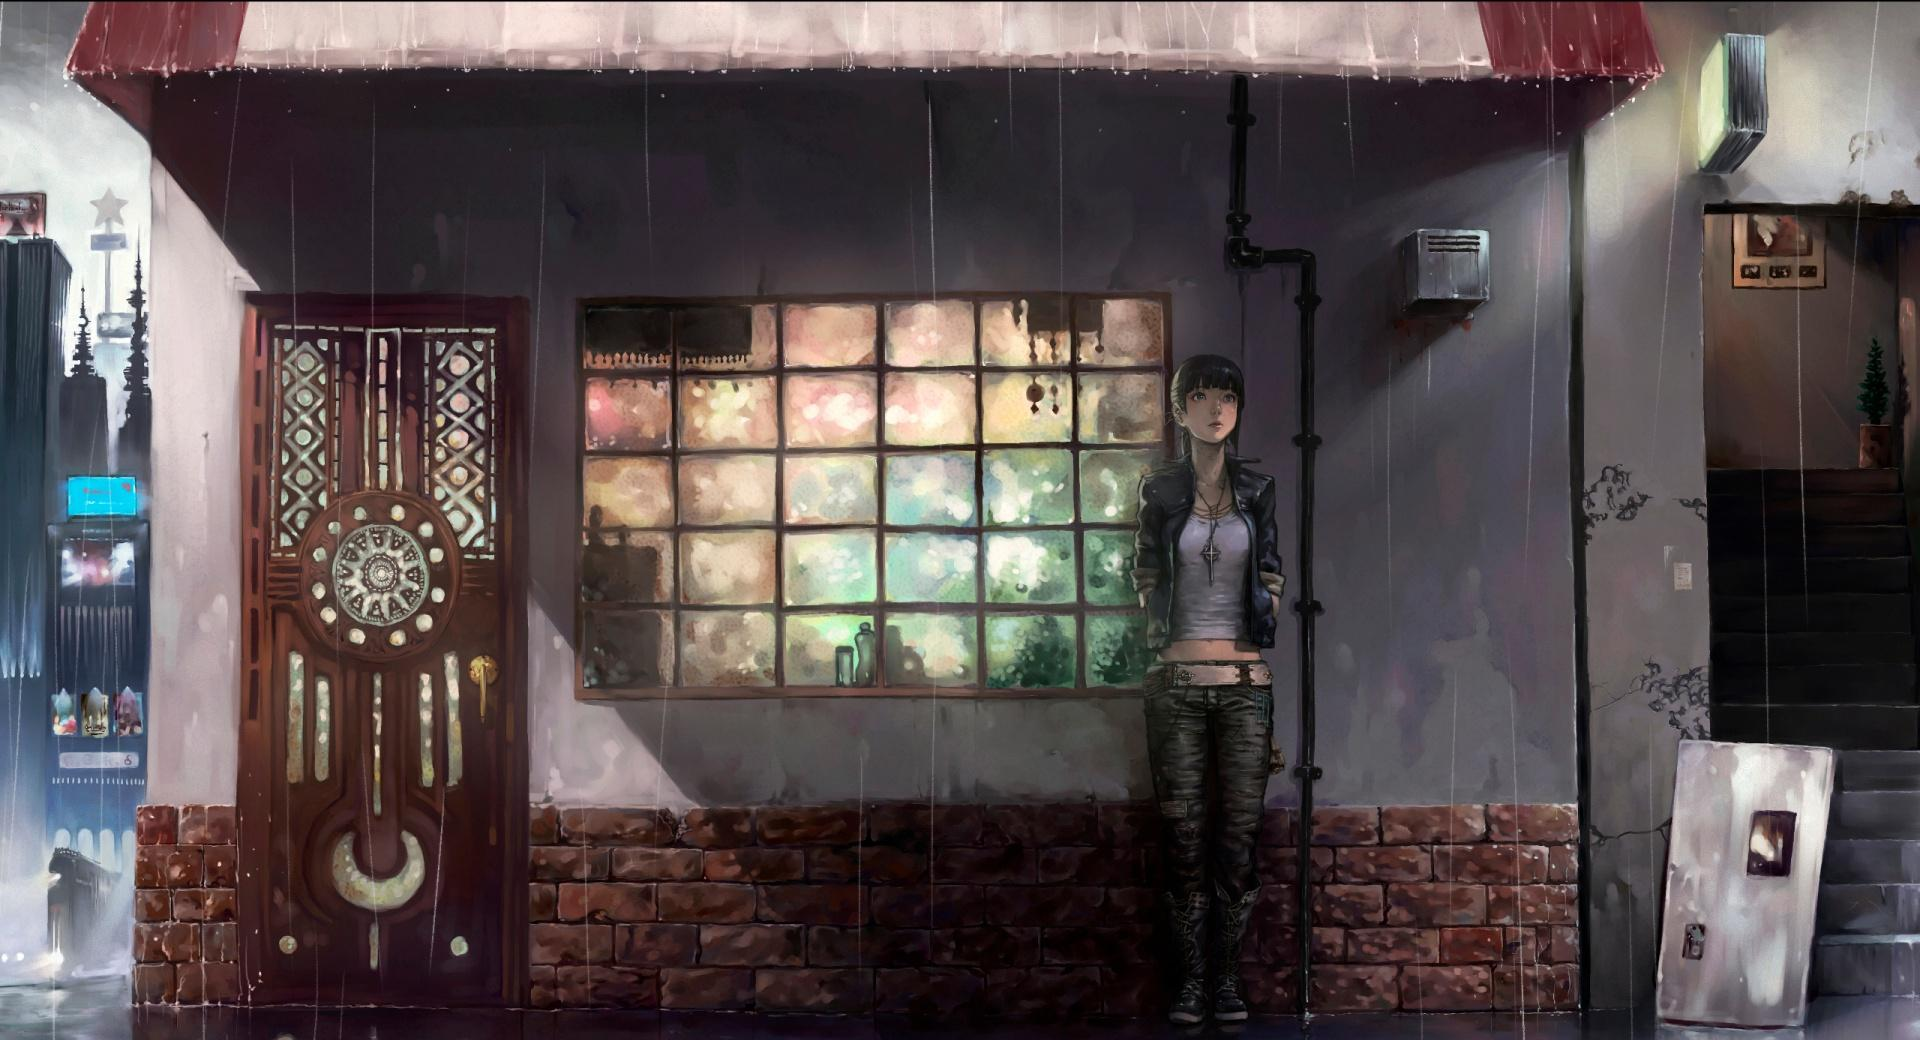 Raining Day Anime wallpapers HD quality